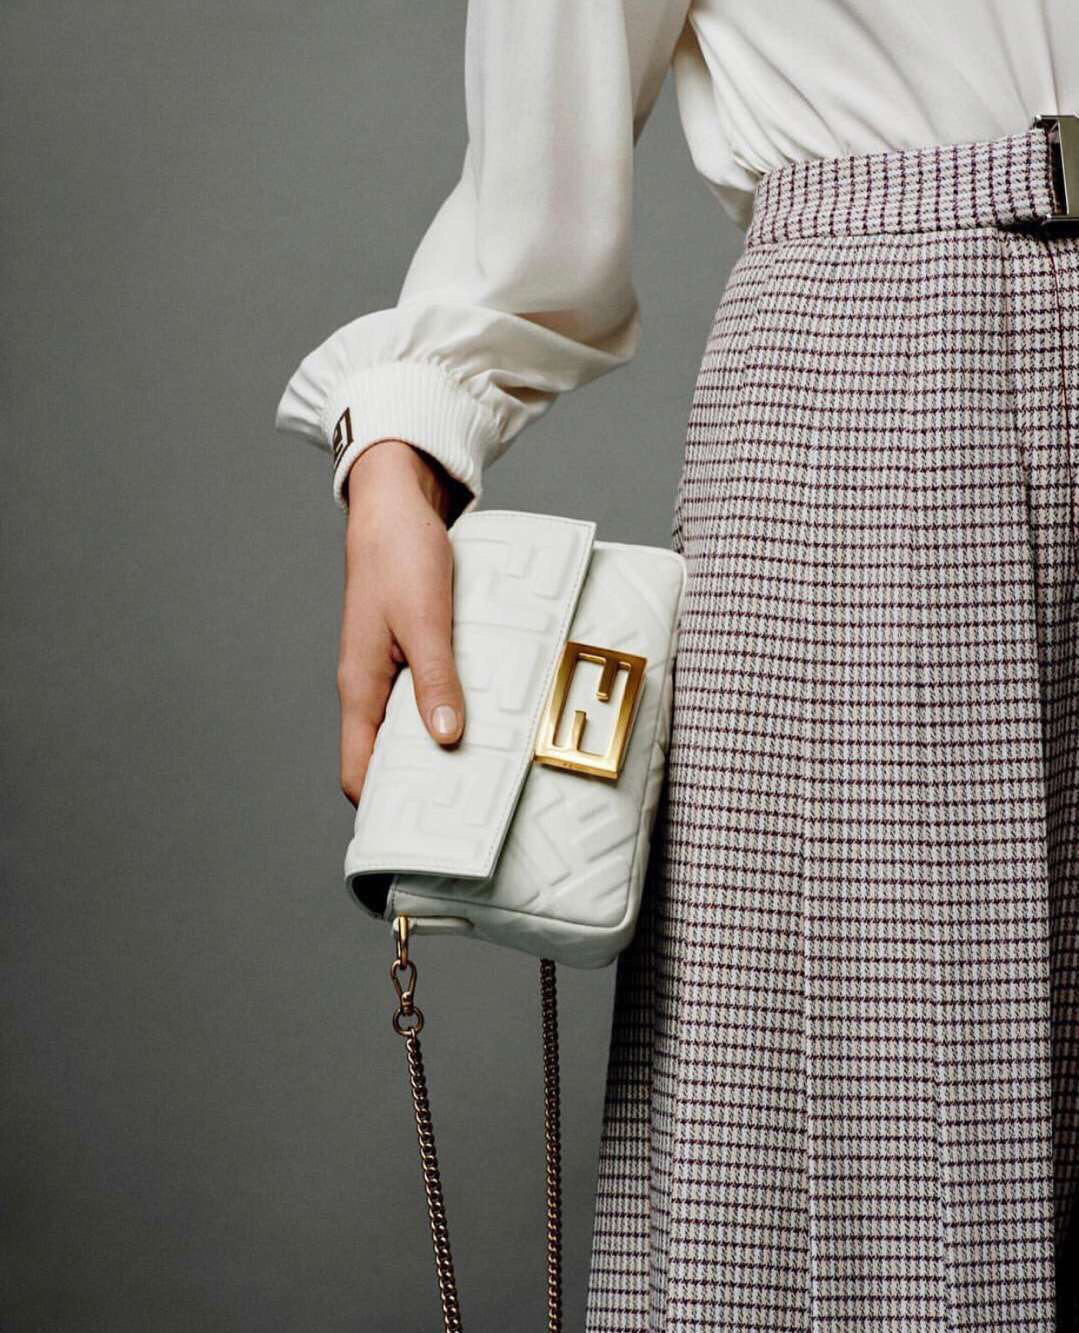 2019 Fendi bag BAGUETTE white